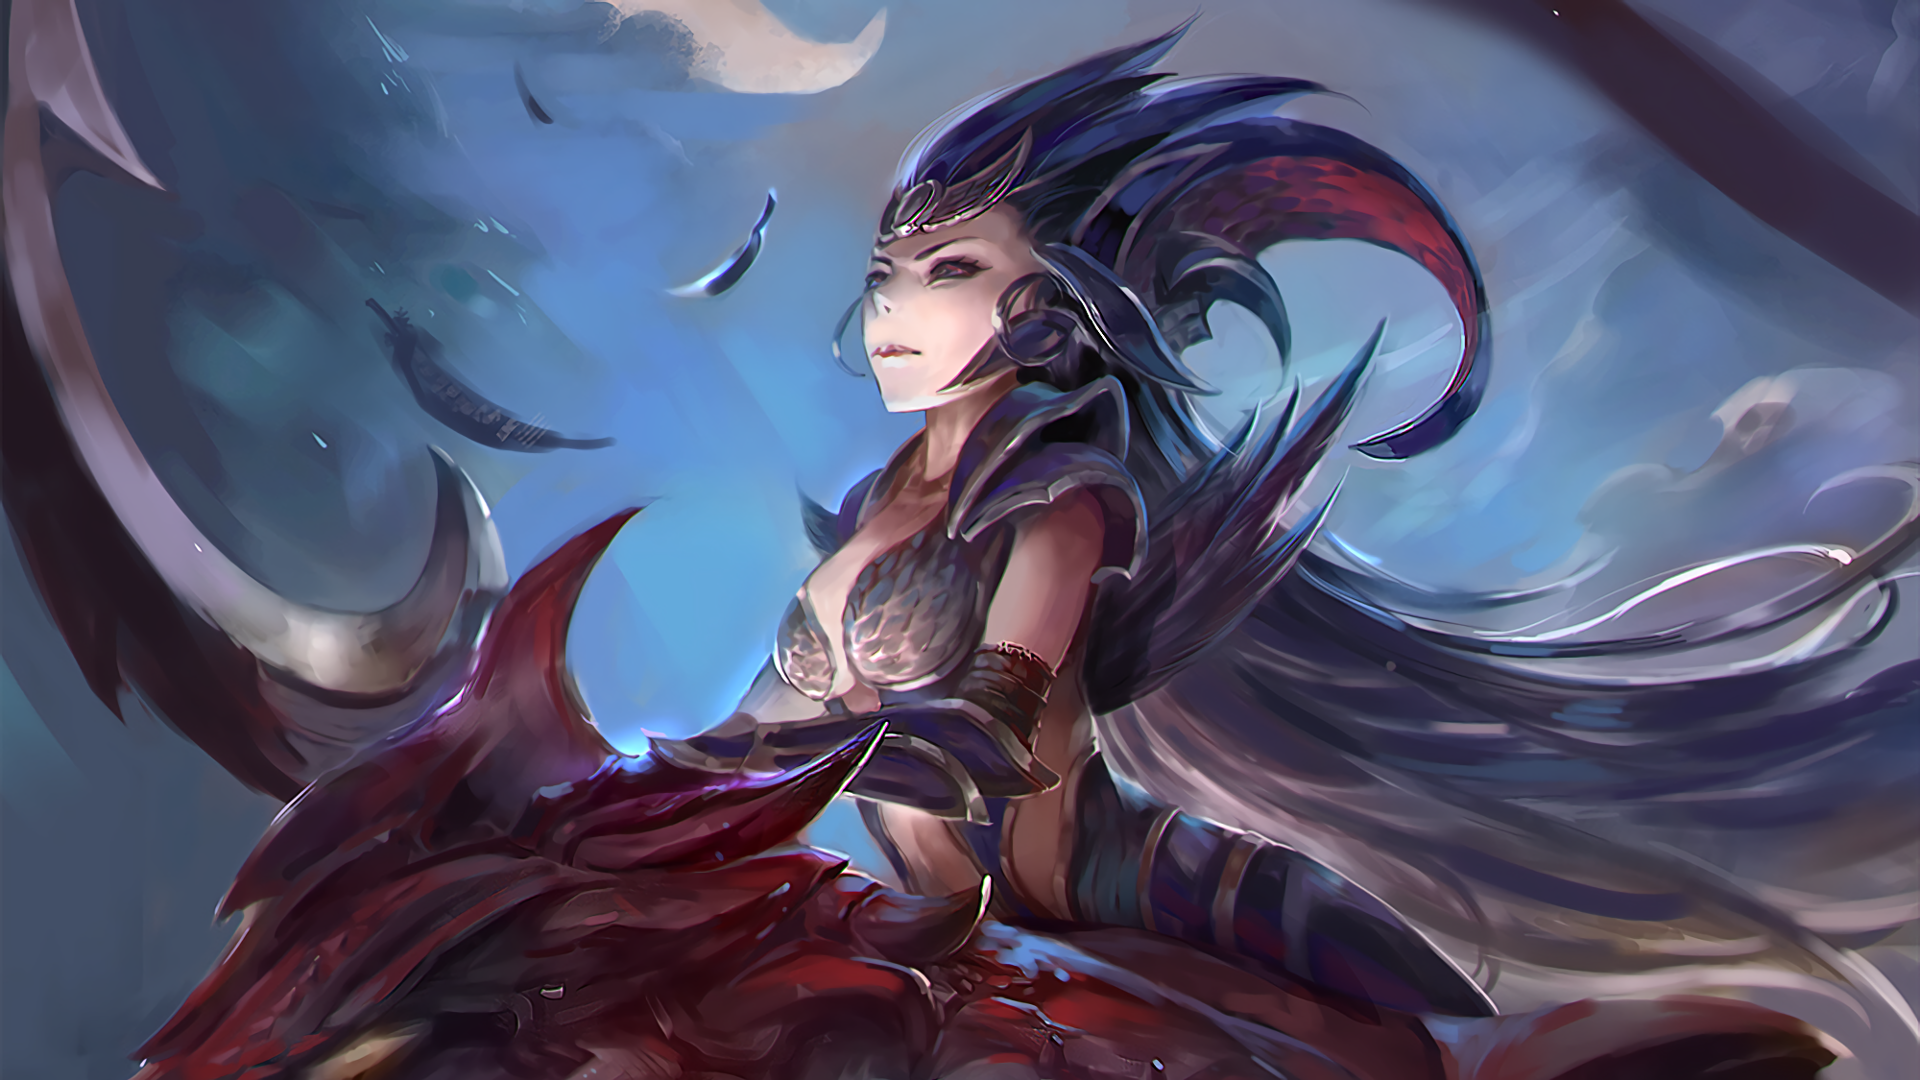 League of legends full hd wallpaper and background image 1920x1080 video game league of legends diana league of legends dragon wallpaper voltagebd Gallery